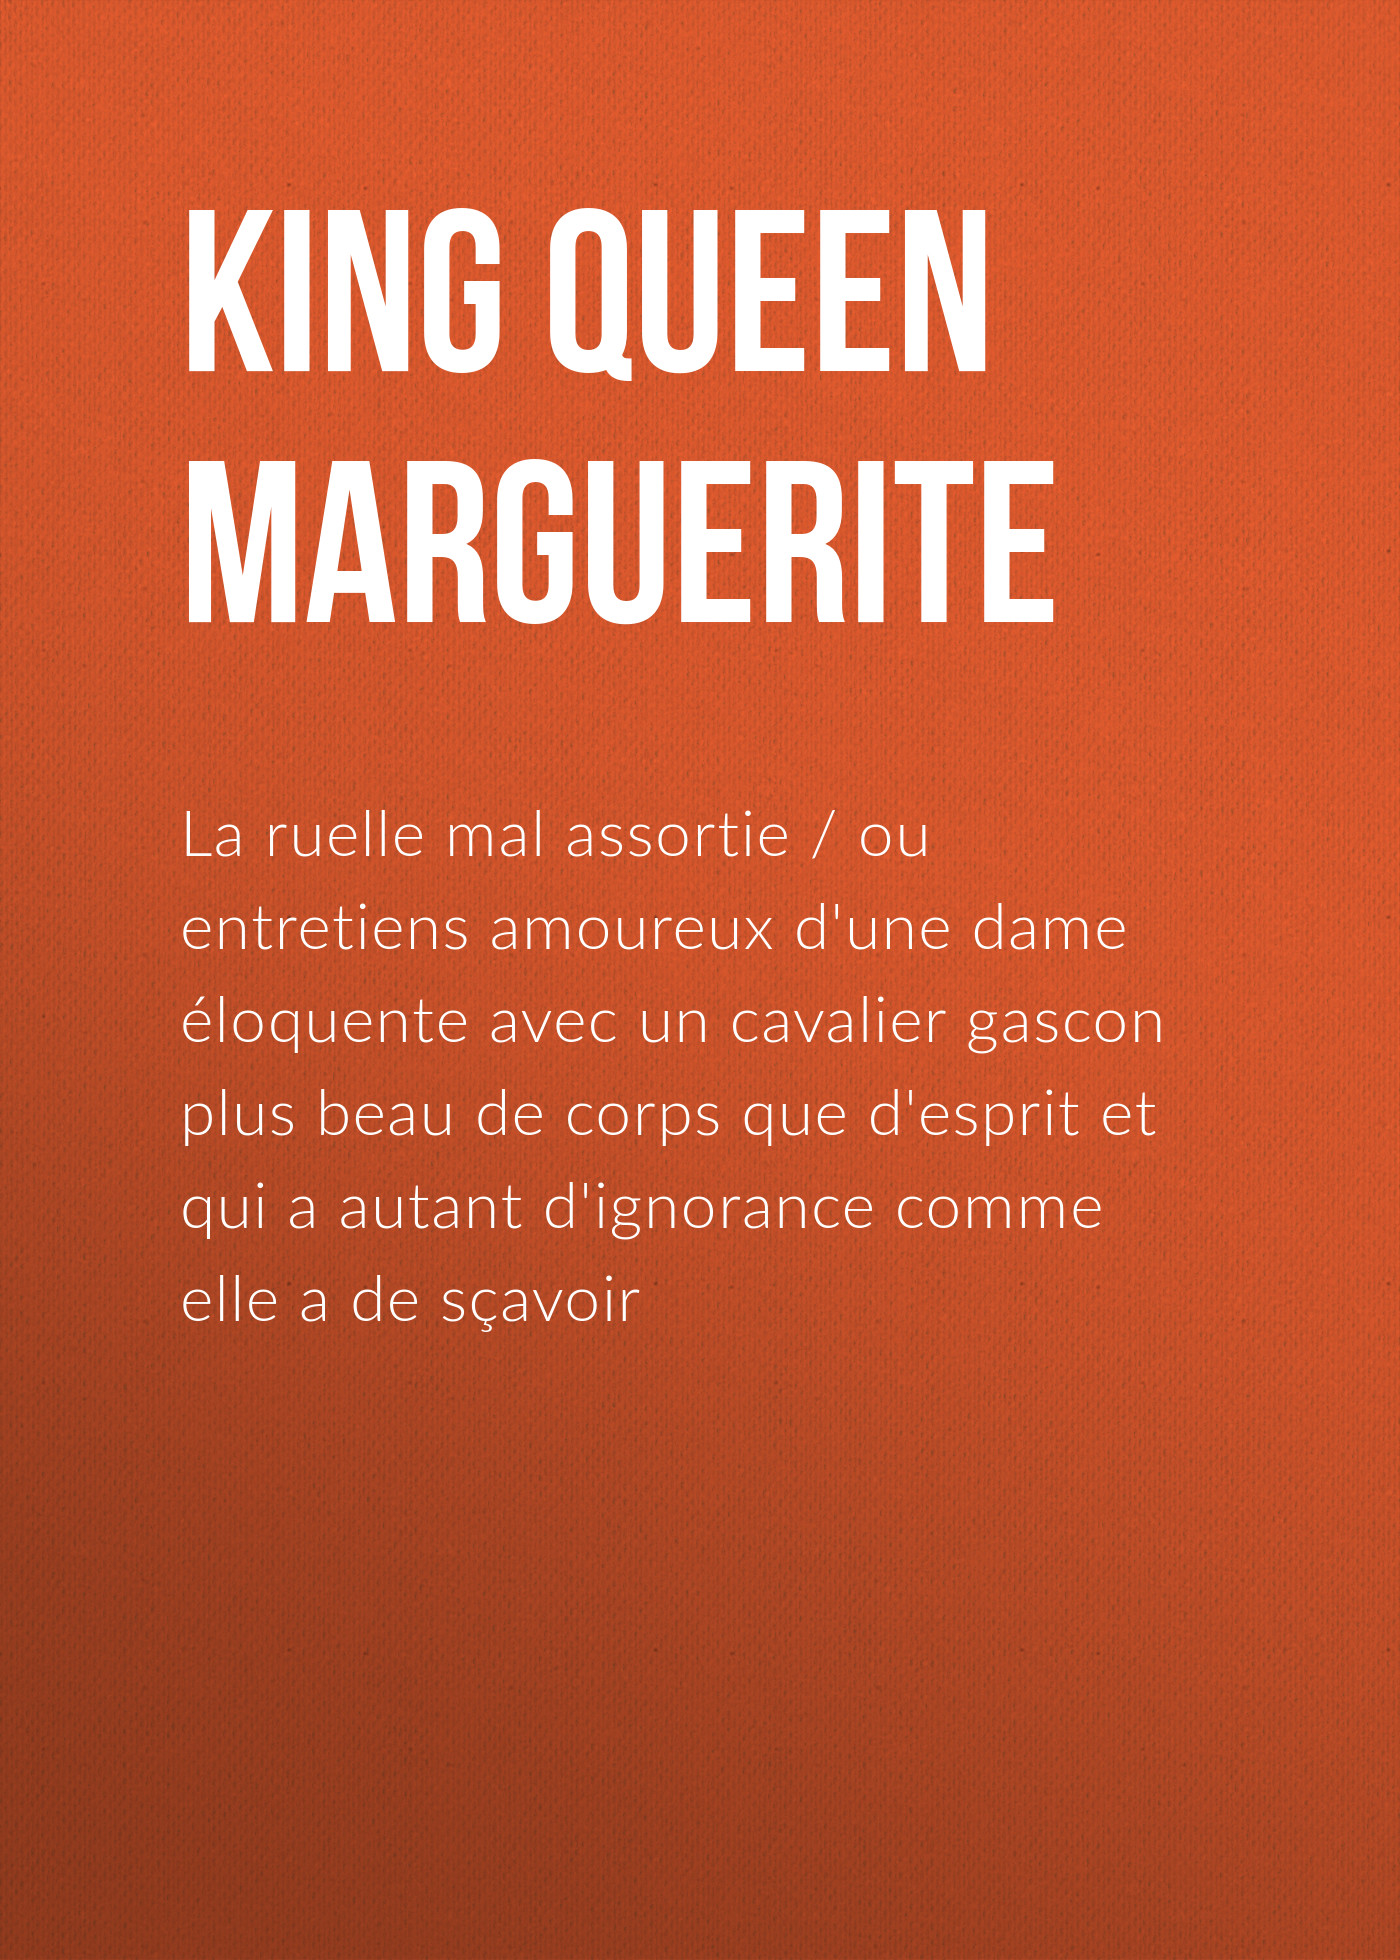 Marguerite Queen, consort of Henry IV, King of France La ruelle mal assortie the history of henry iv surnamed the great king of france and navarre